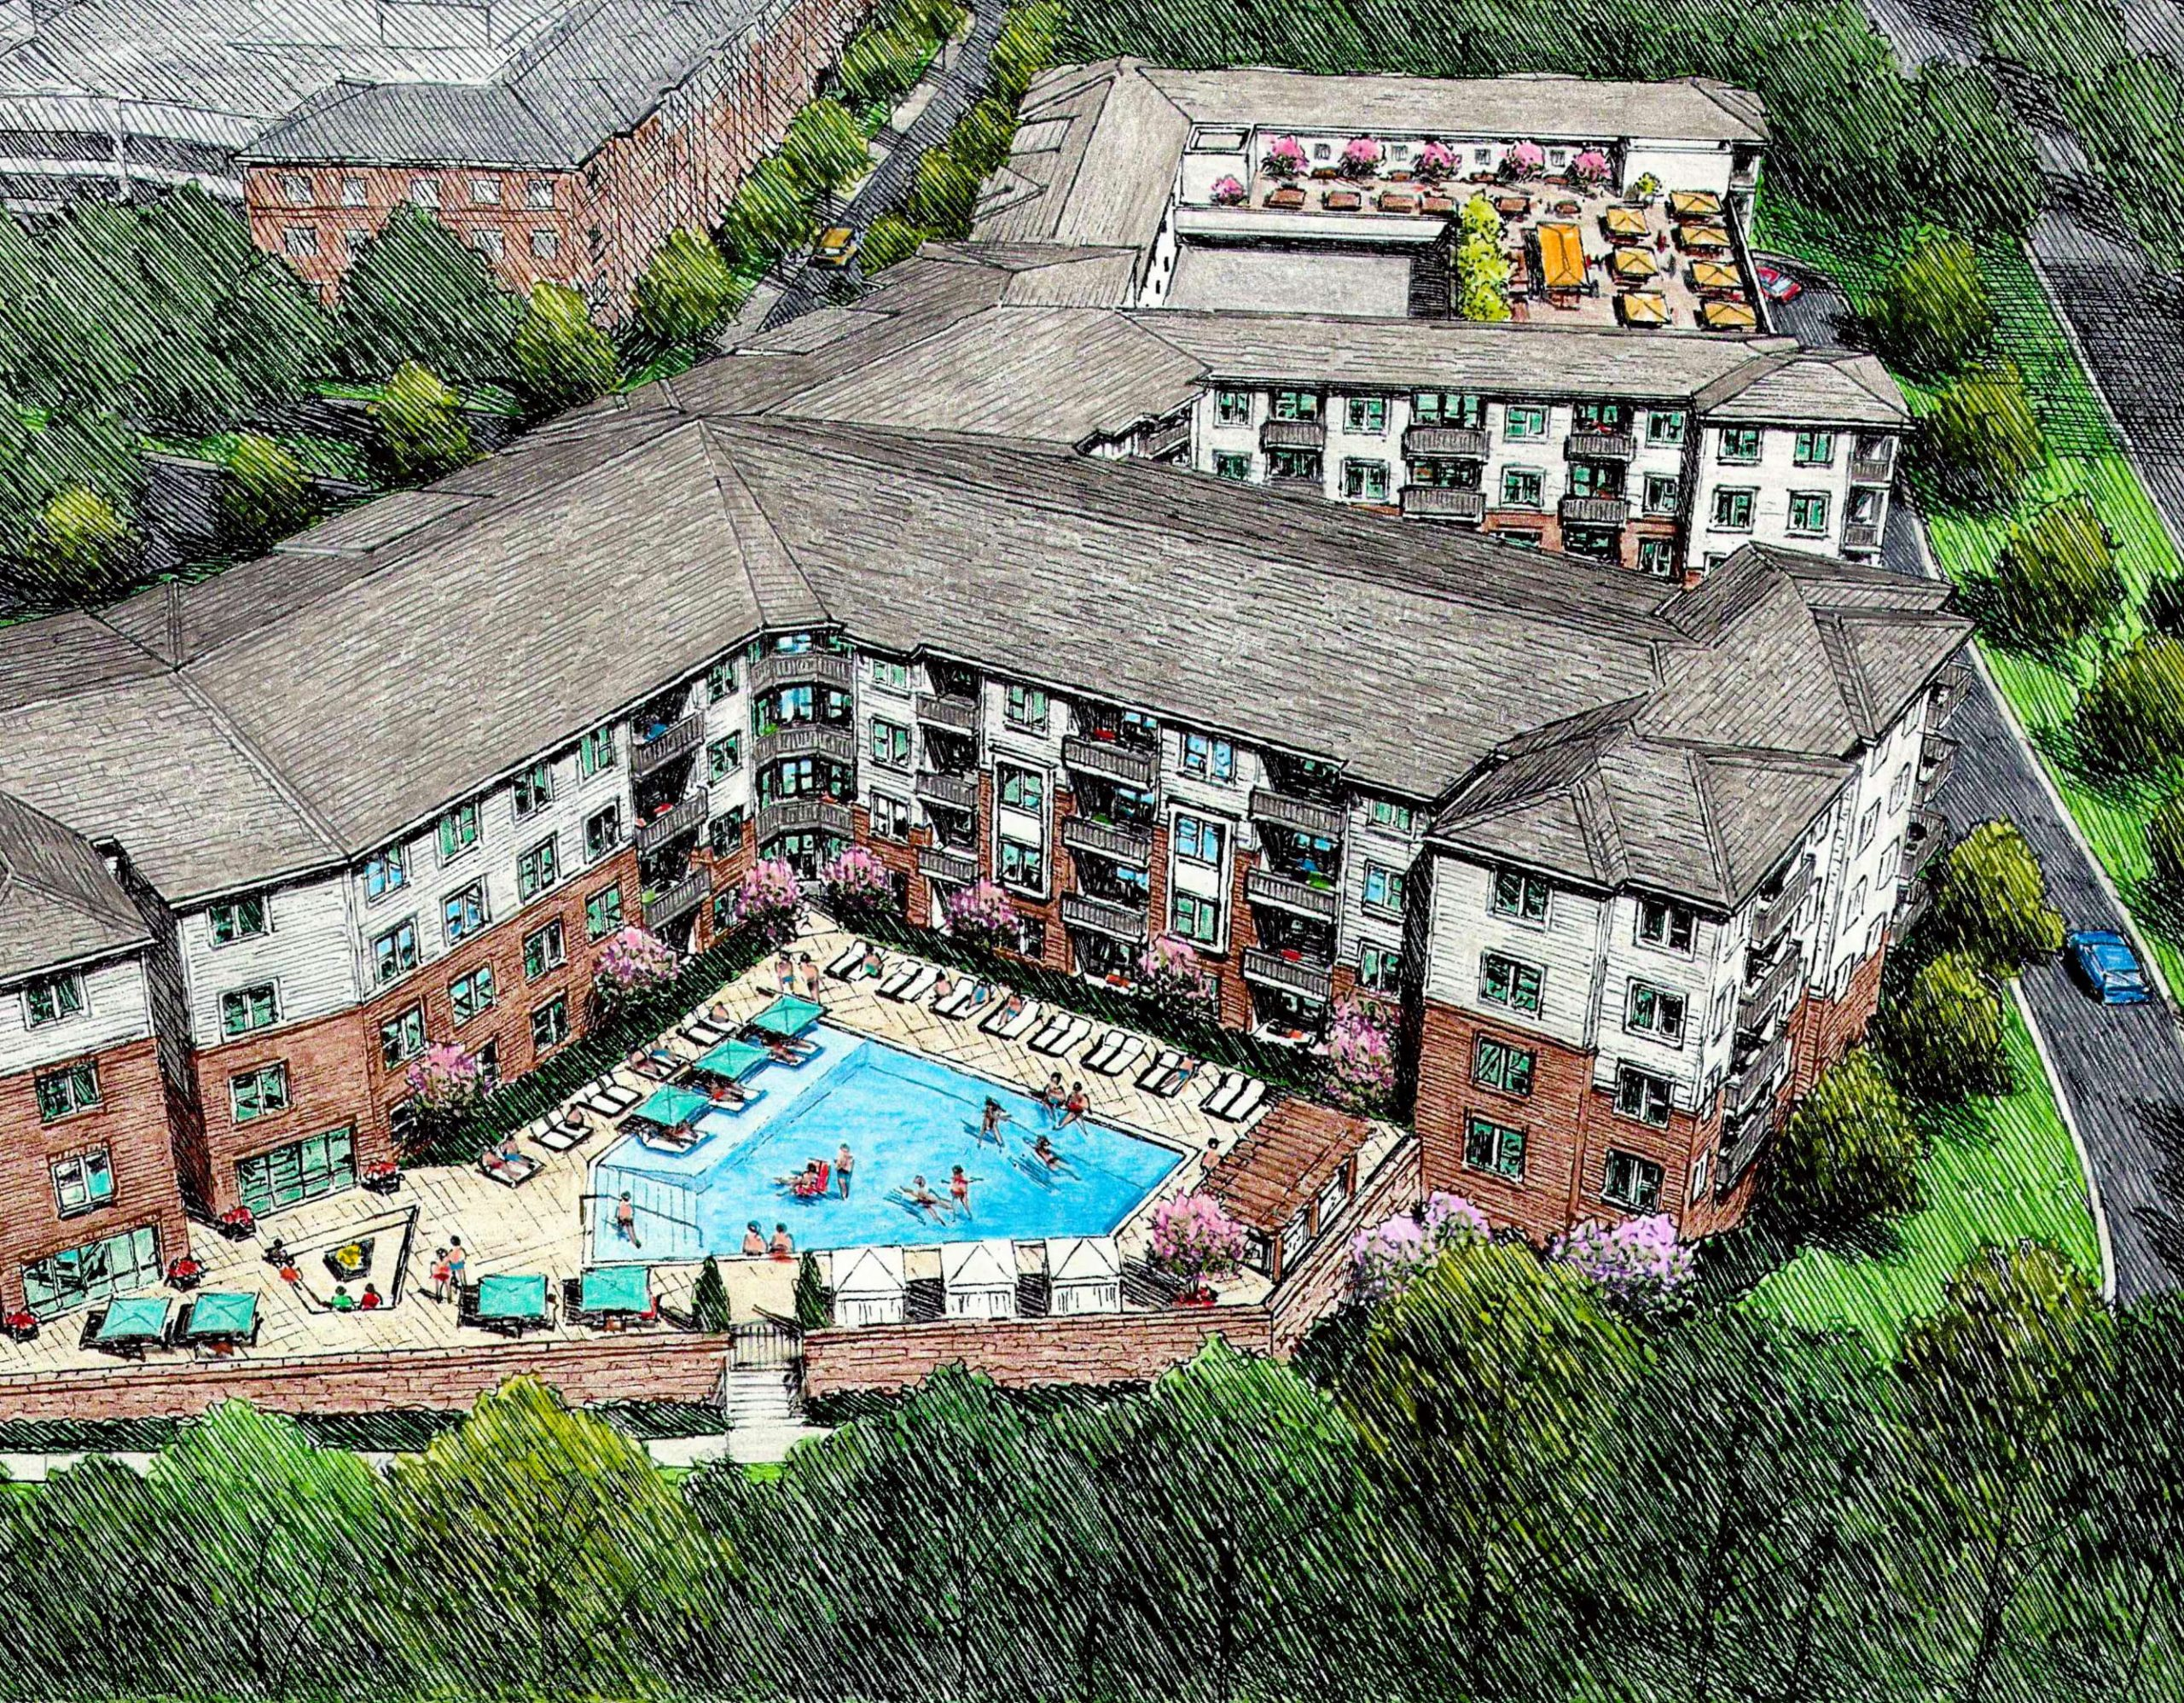 Press Release: Magma Equities purchases Richmond Hills, a 1970s vintage apartment community for value-add in Raleigh, NC